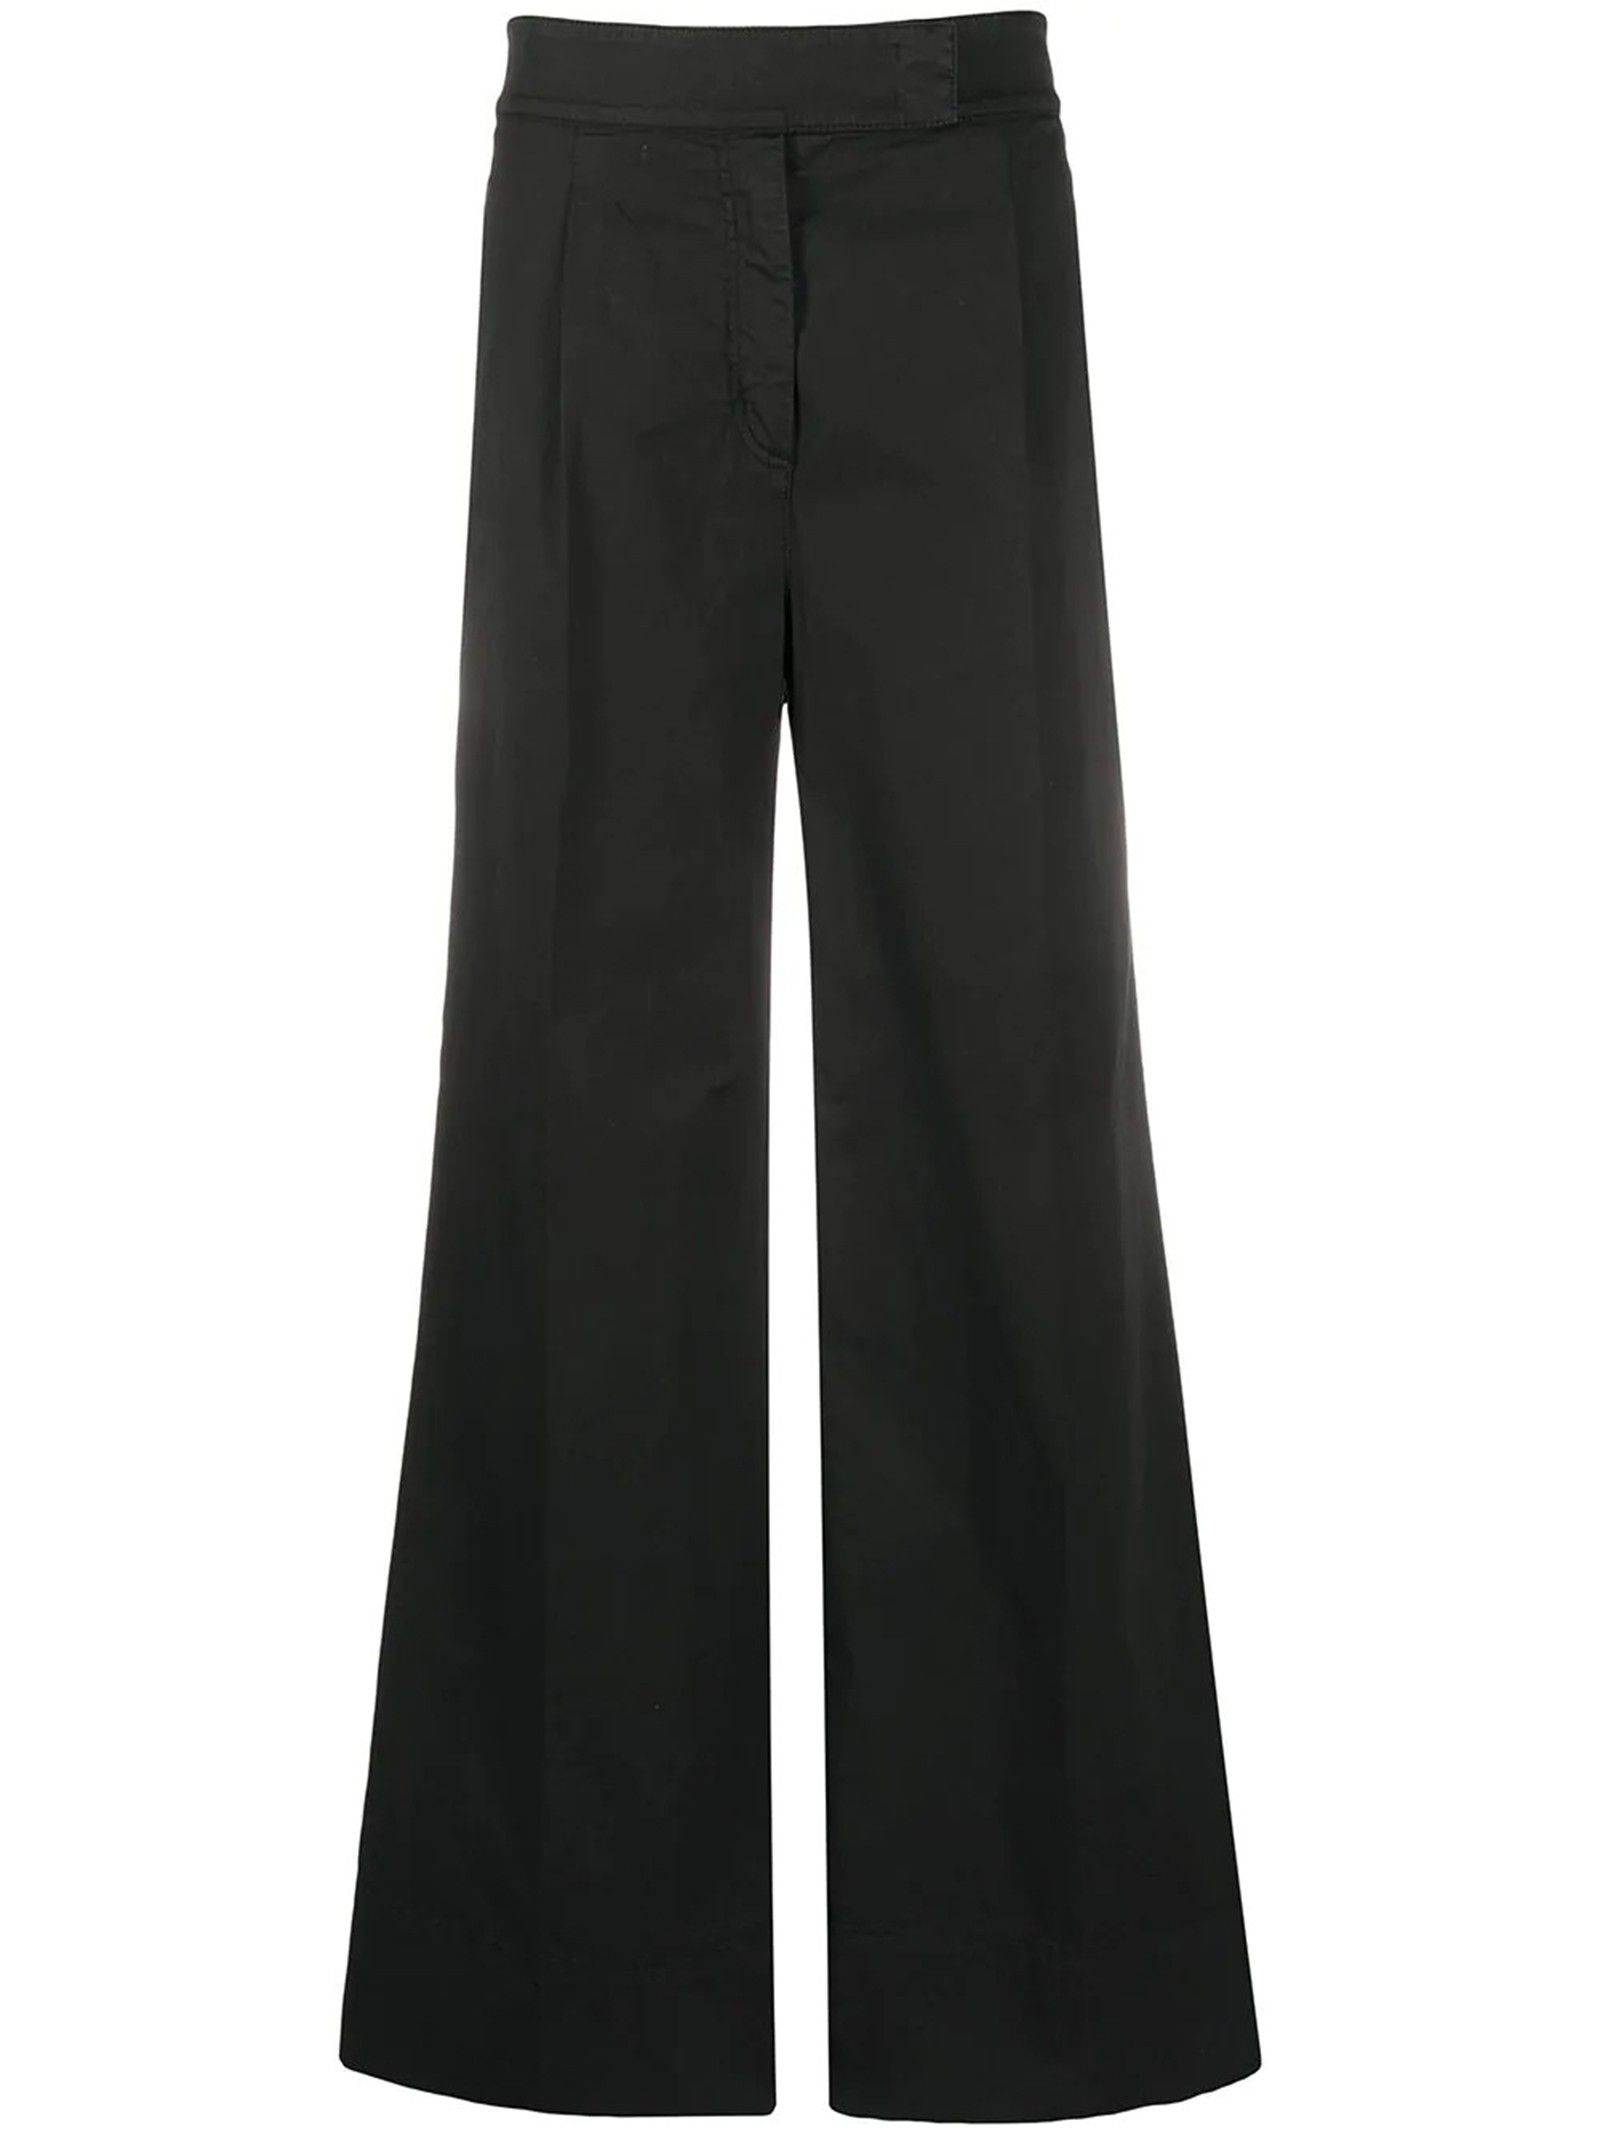 N°21 WOMEN'S 20EN2M0B08100759000 BLACK COTTON PANTS